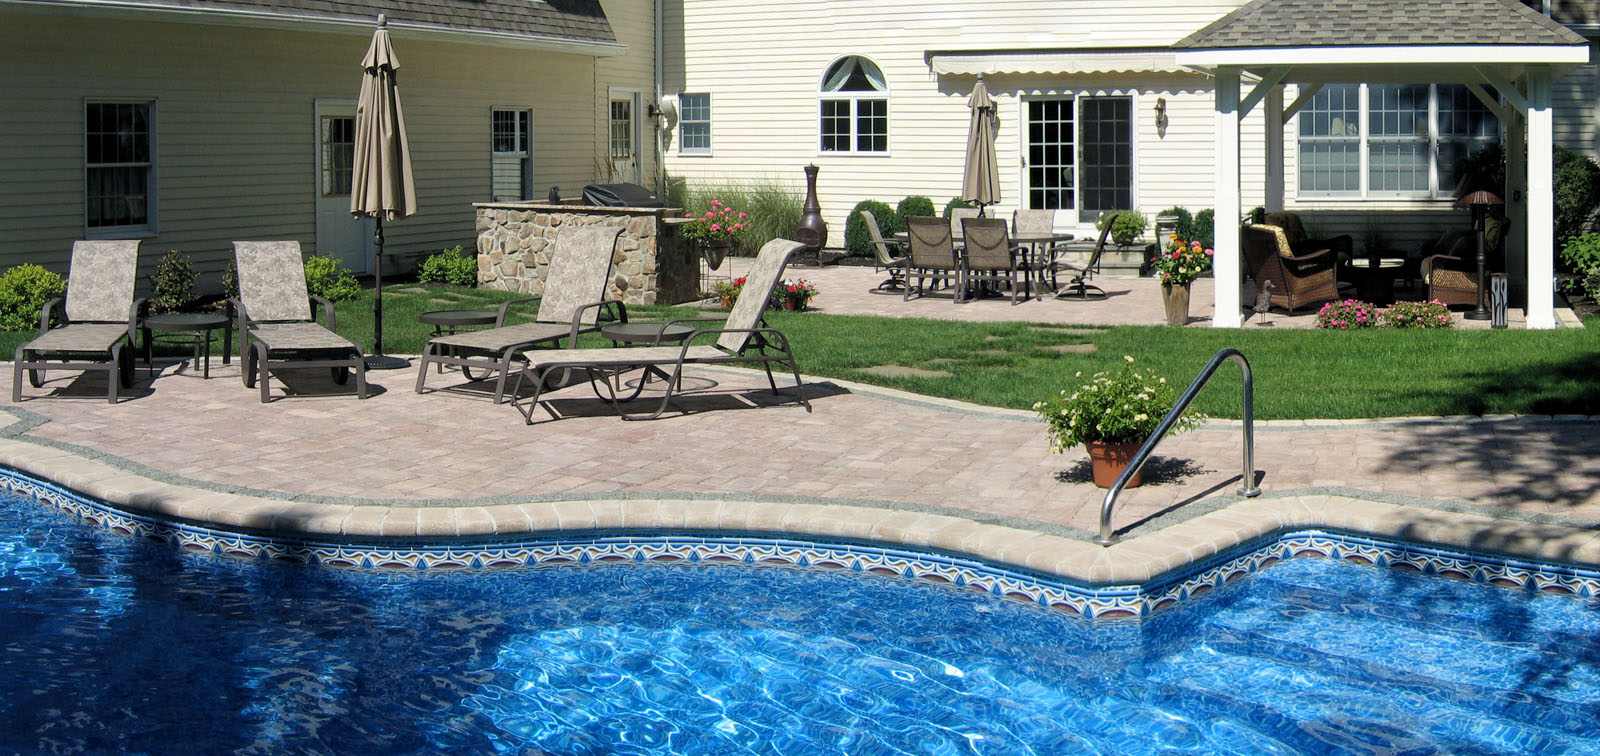 swimming pool with paver patio